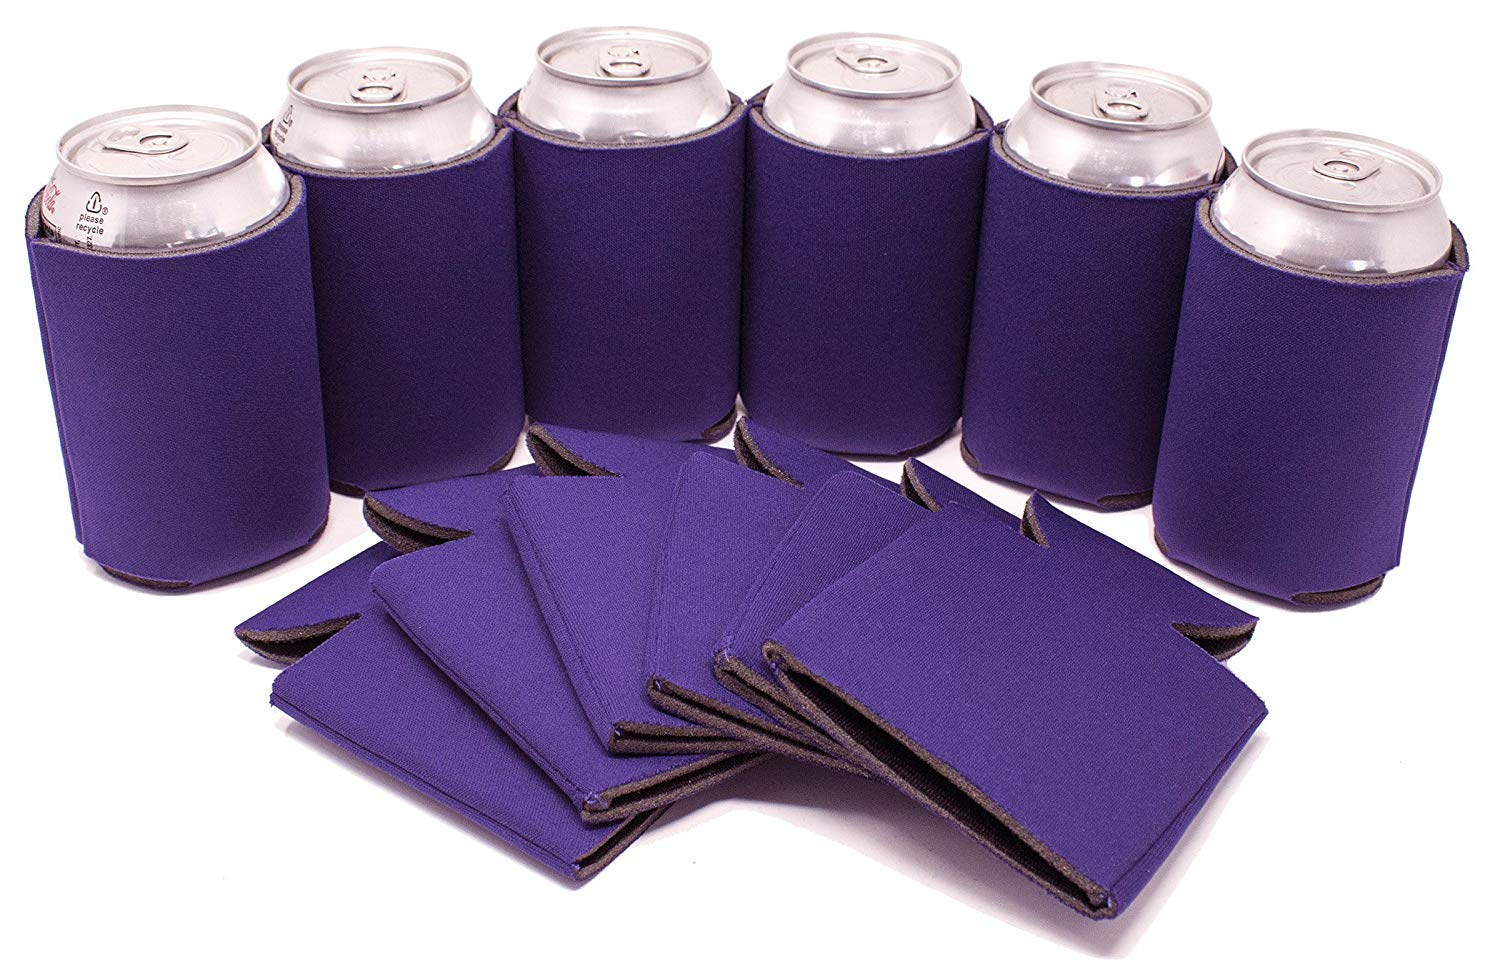 TahoeBay 25 Blank Beer Can Coolers, Plain Bulk Collapsible Soda Cover Coolies, DIY Personalized Sublimation Sleeves for Weddings, Bachelorette Parties, Funny HTV Party Favors (Purple, 25)